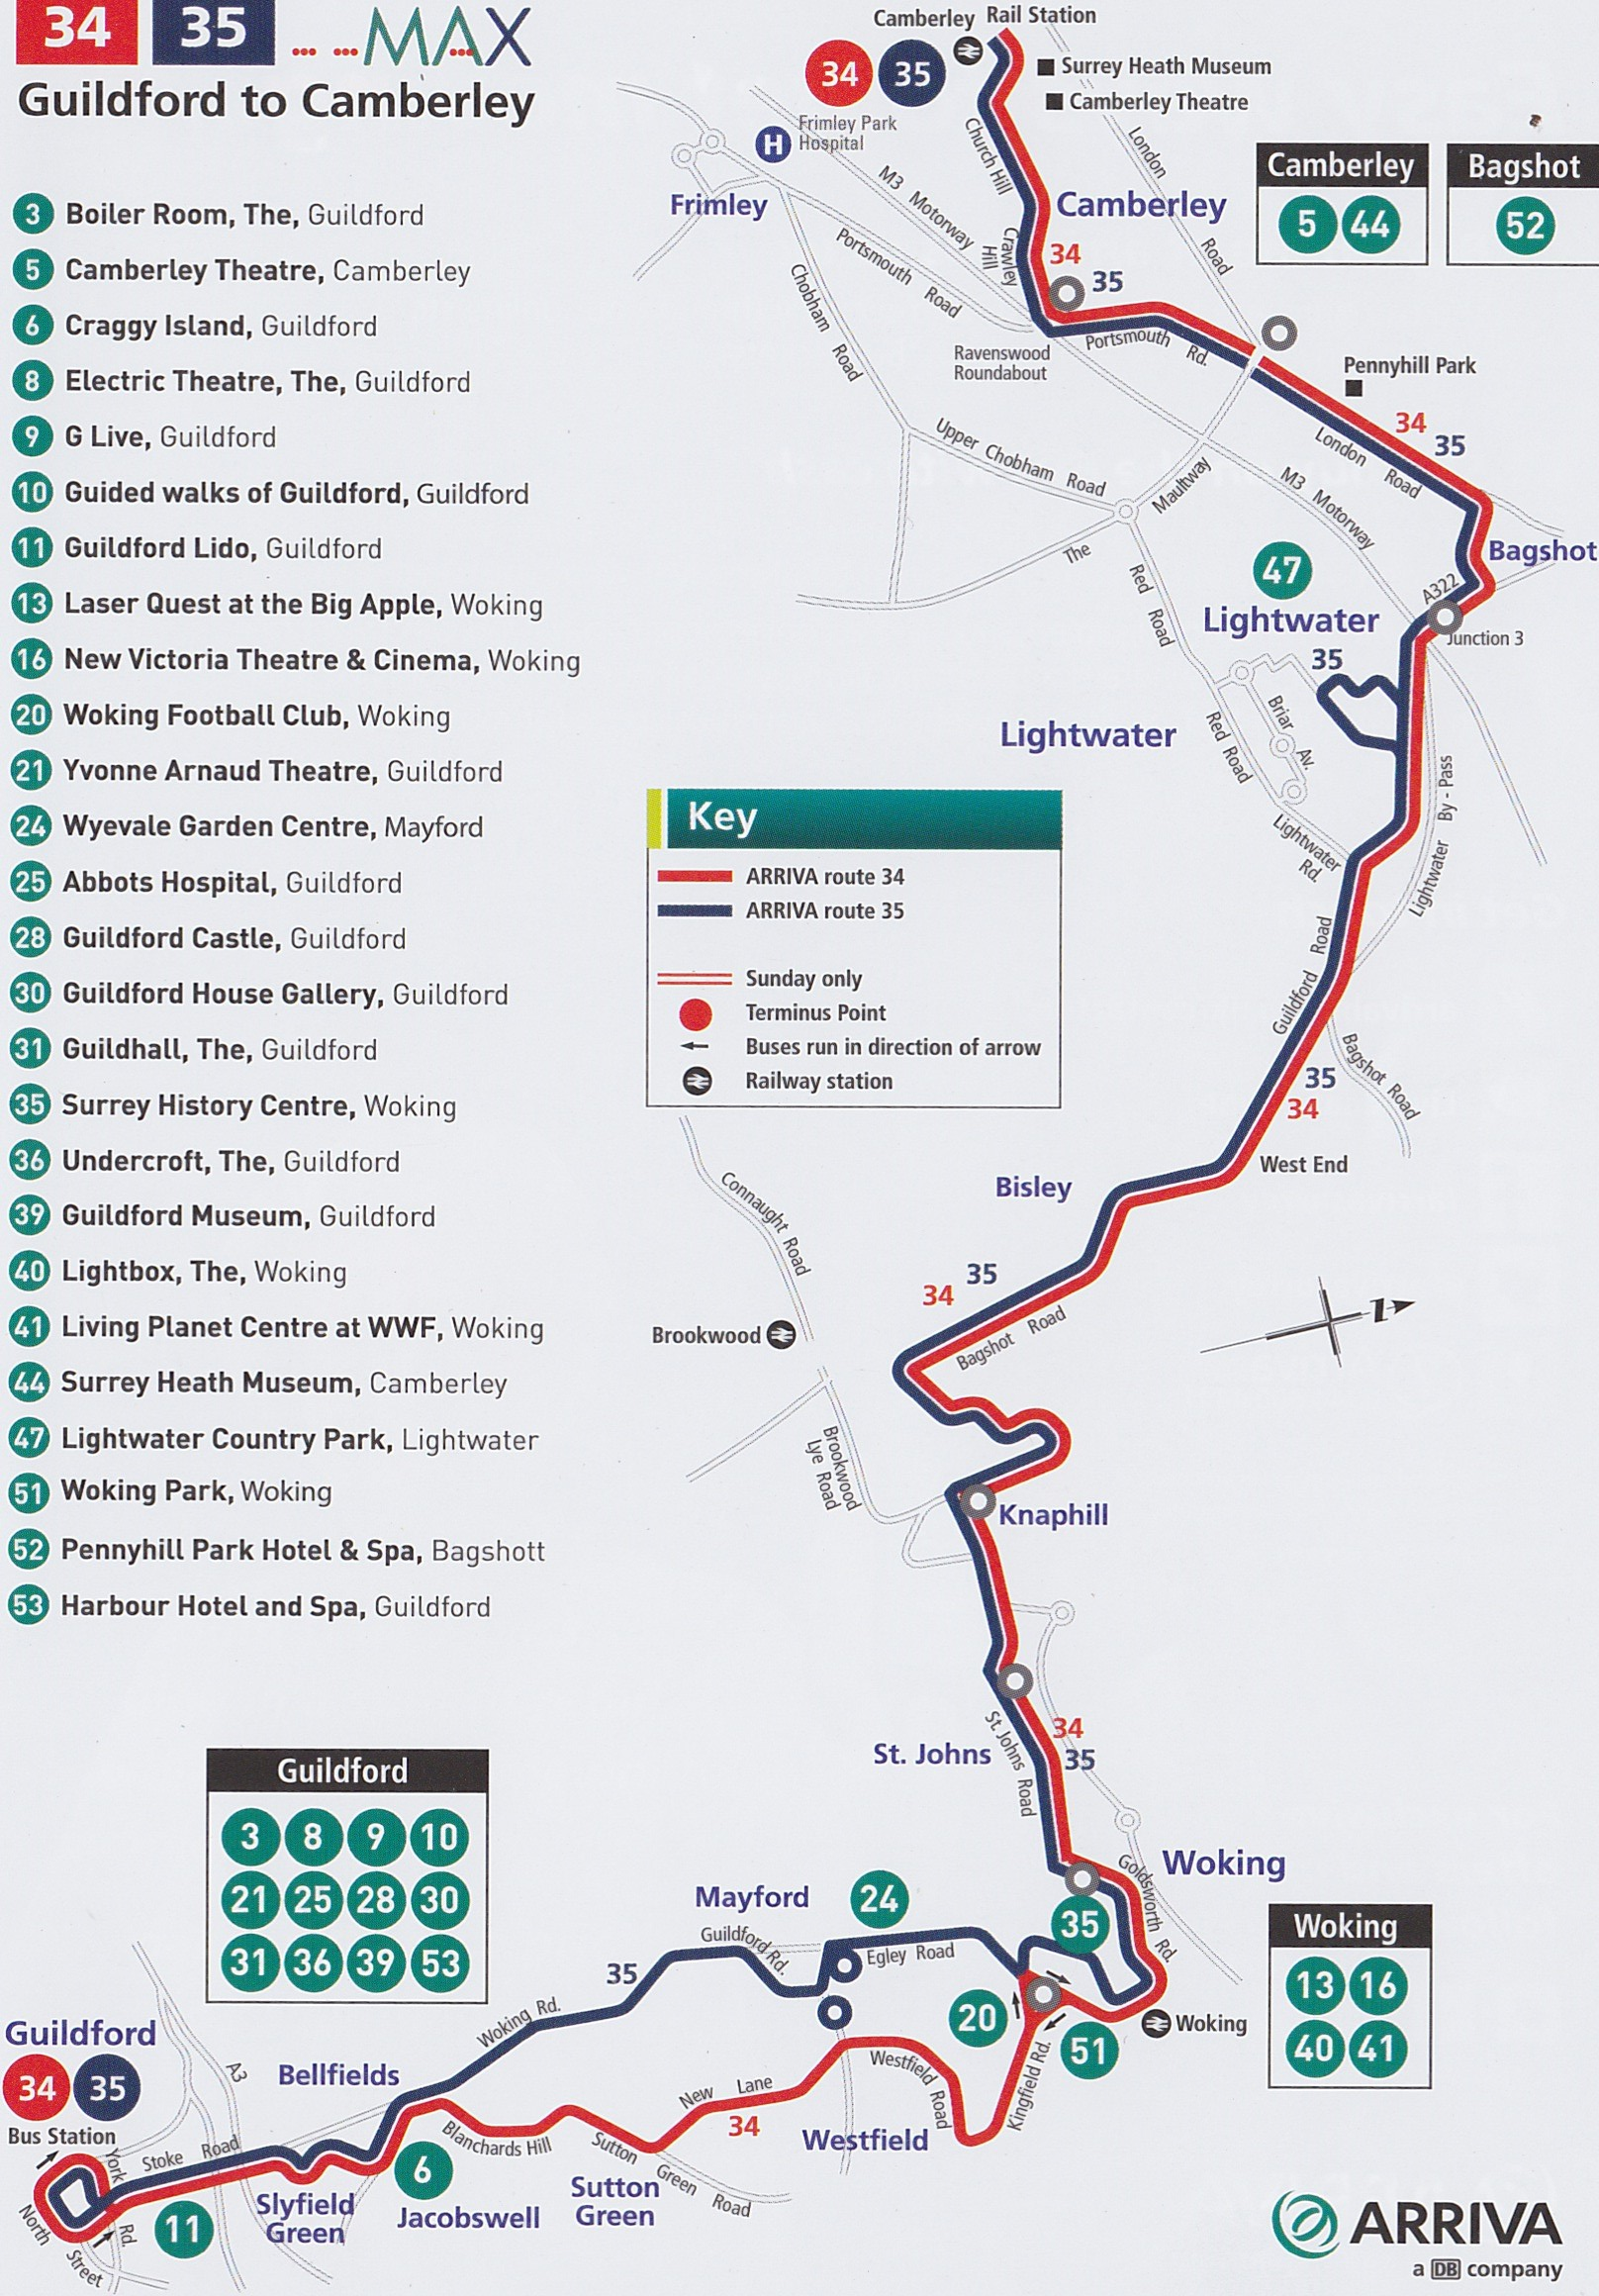 The 34 and 35 bus routes from Camberley to Guildford thru Lightwater